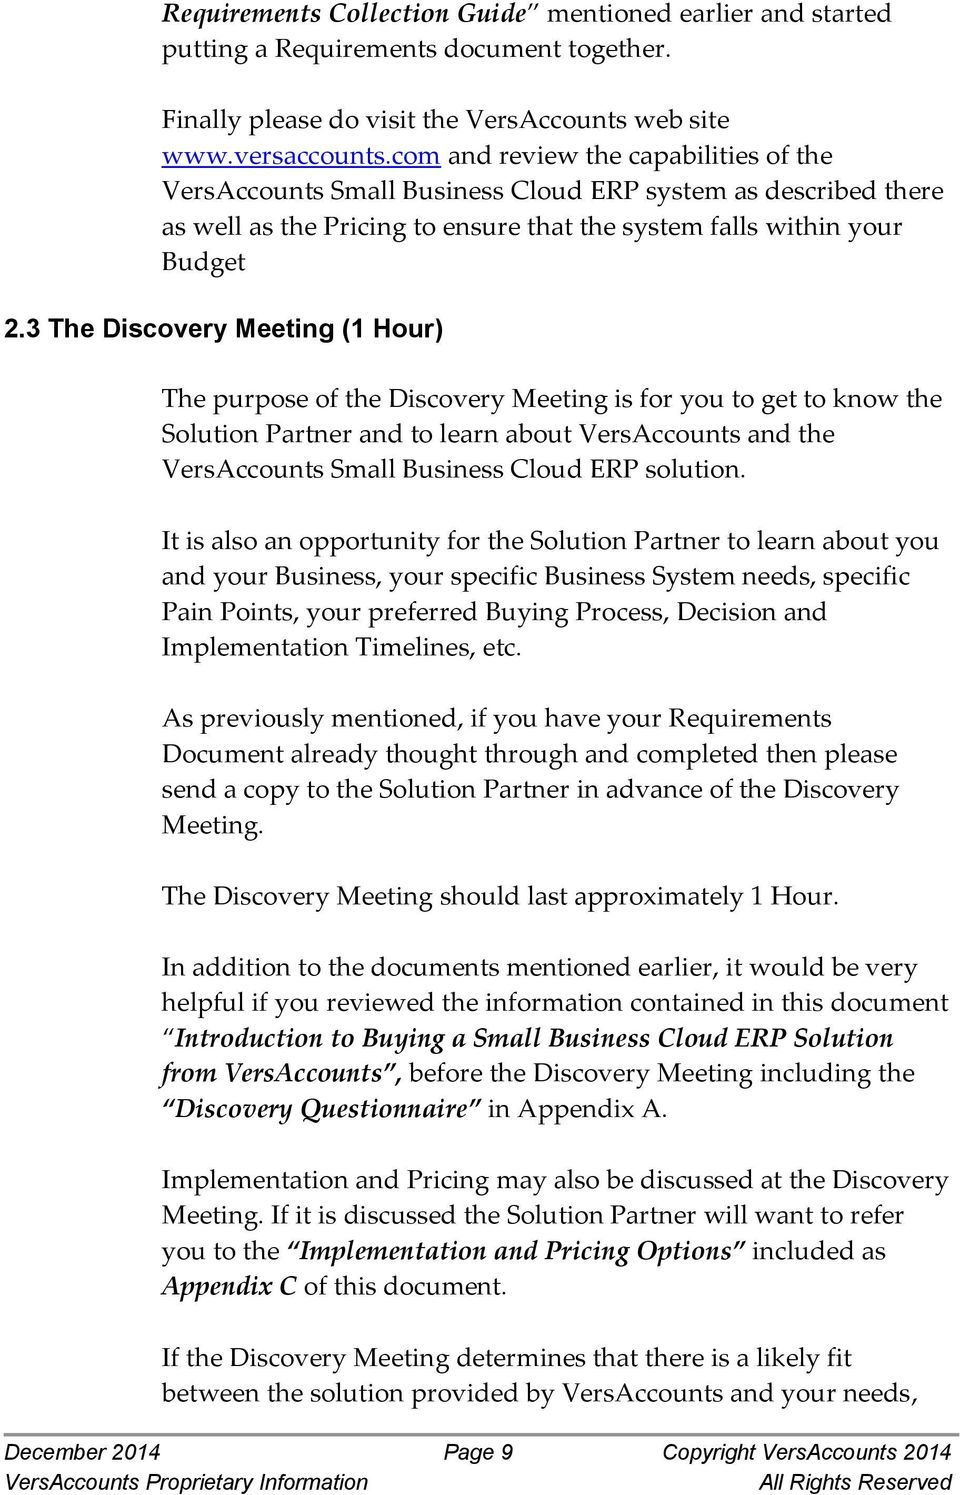 3 The Discovery Meeting (1 Hour) The purpose of the Discovery Meeting is for you to get to know the Solution Partner and to learn about VersAccounts and the VersAccounts Small Business Cloud ERP